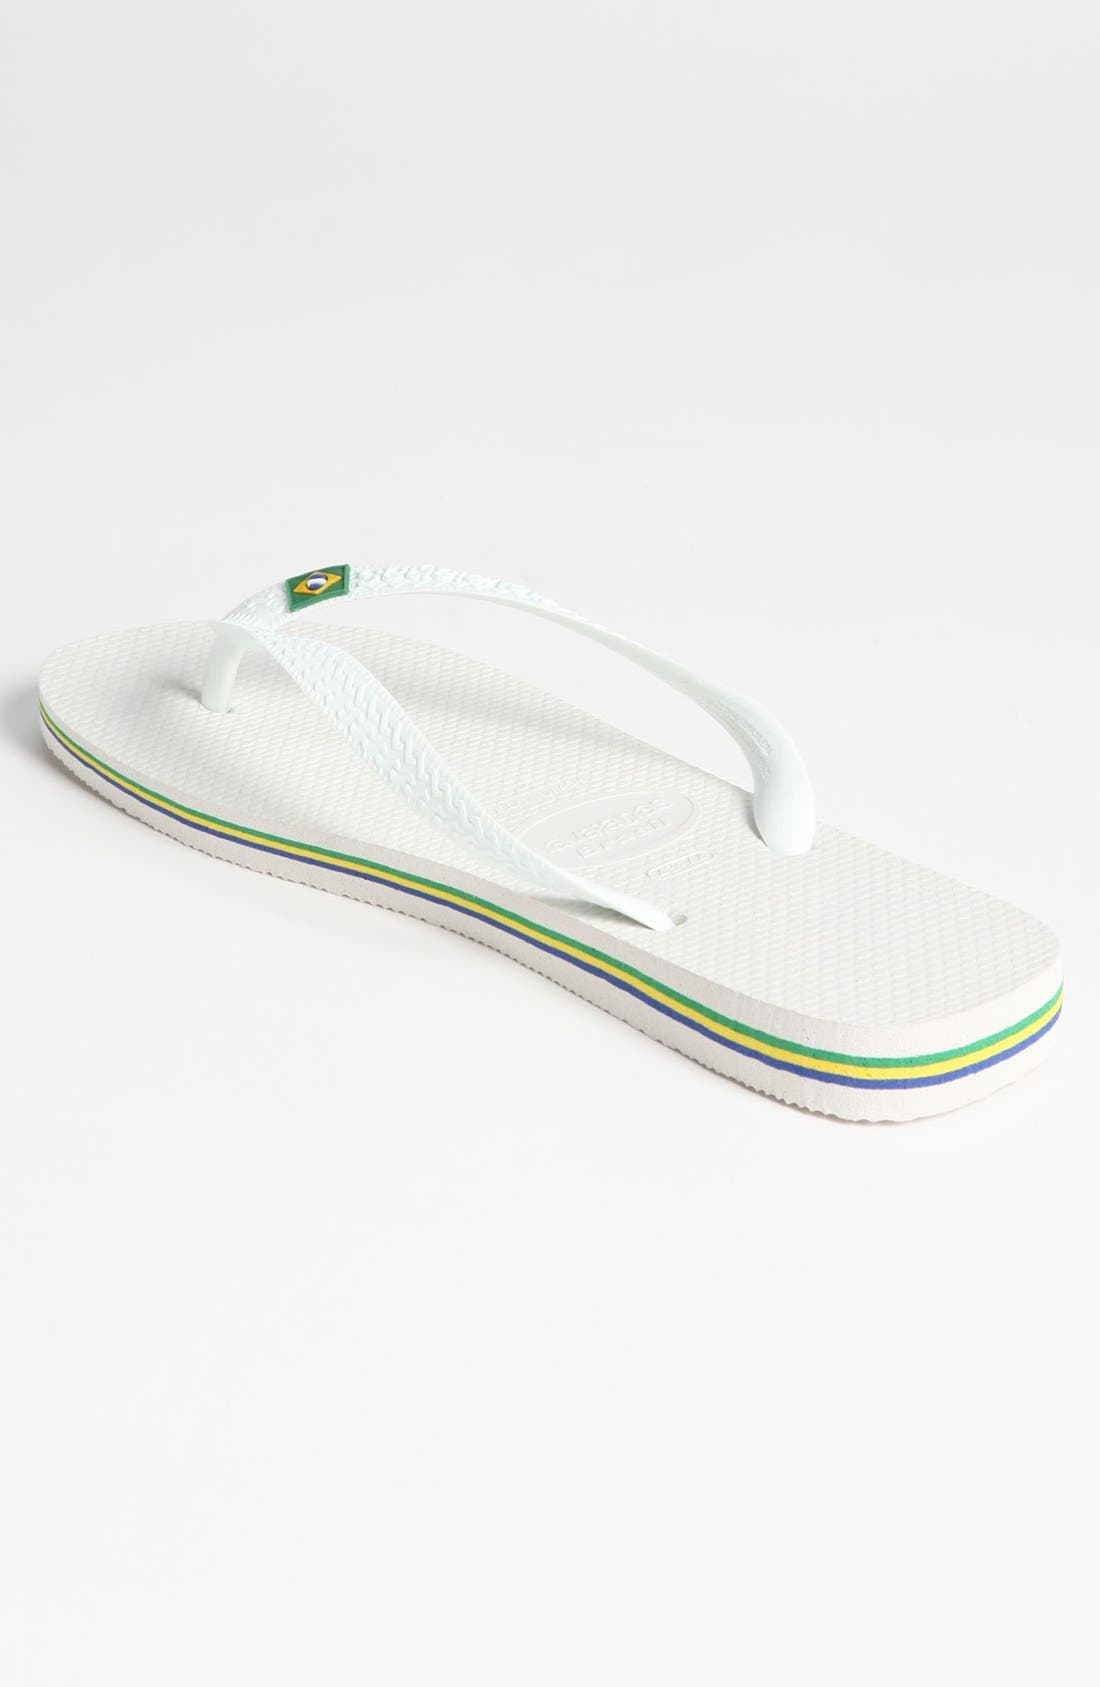 HAVAIANAS, 'Brazil' Flip Flop, Alternate thumbnail 4, color, WHITE